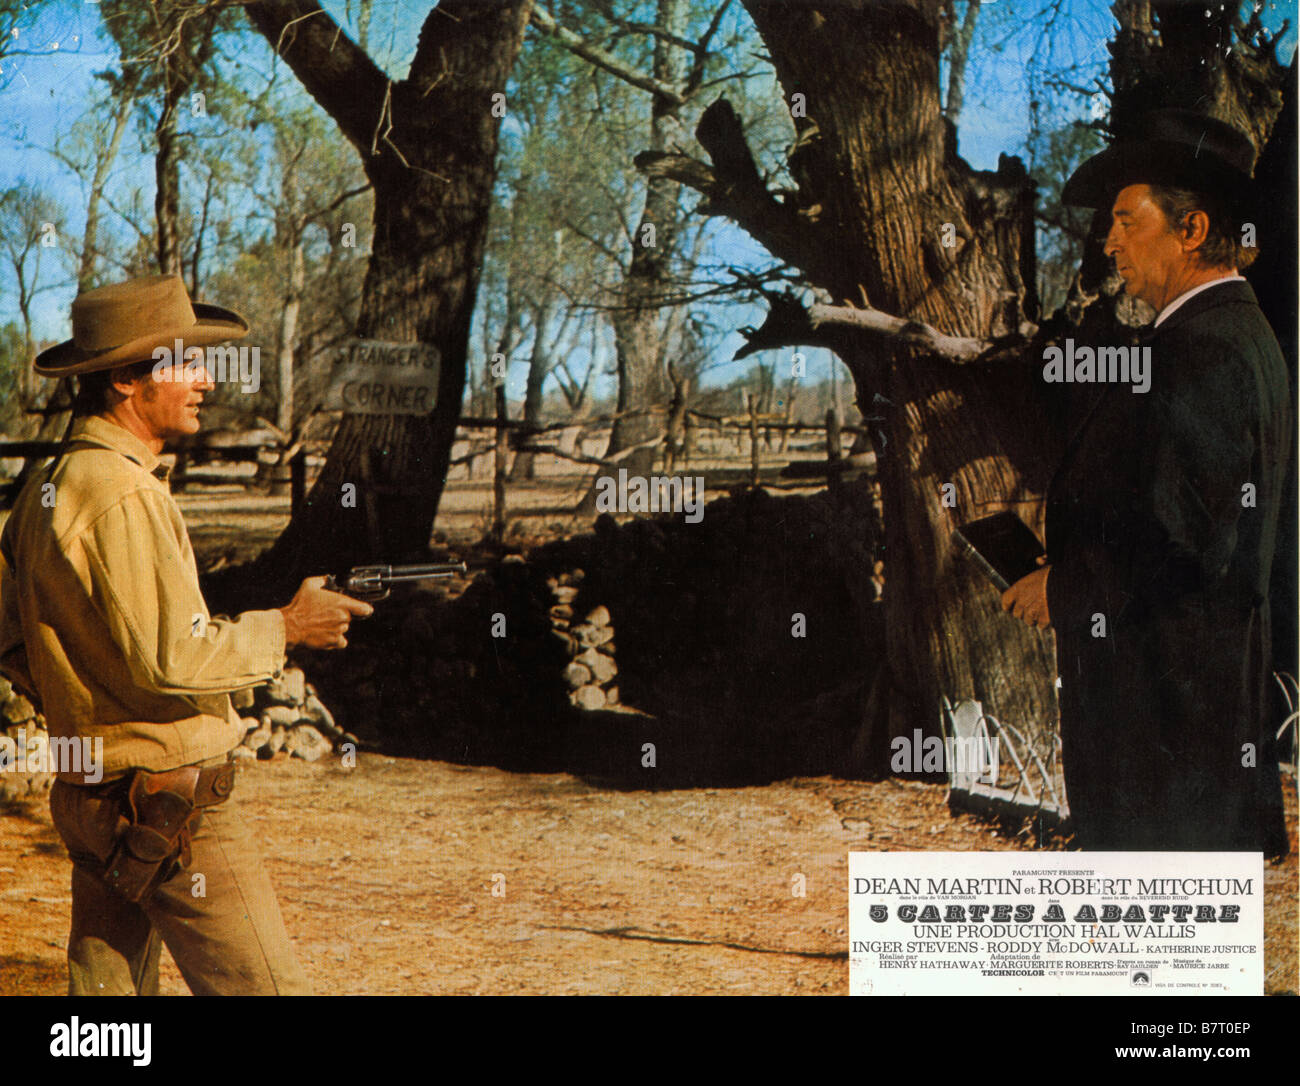 5 Year Cinq Cartes A Abattre 5 Card Stud Year 1968 Usa Robert Mitchum Roddy Mcdowall Director Henry Hathaway